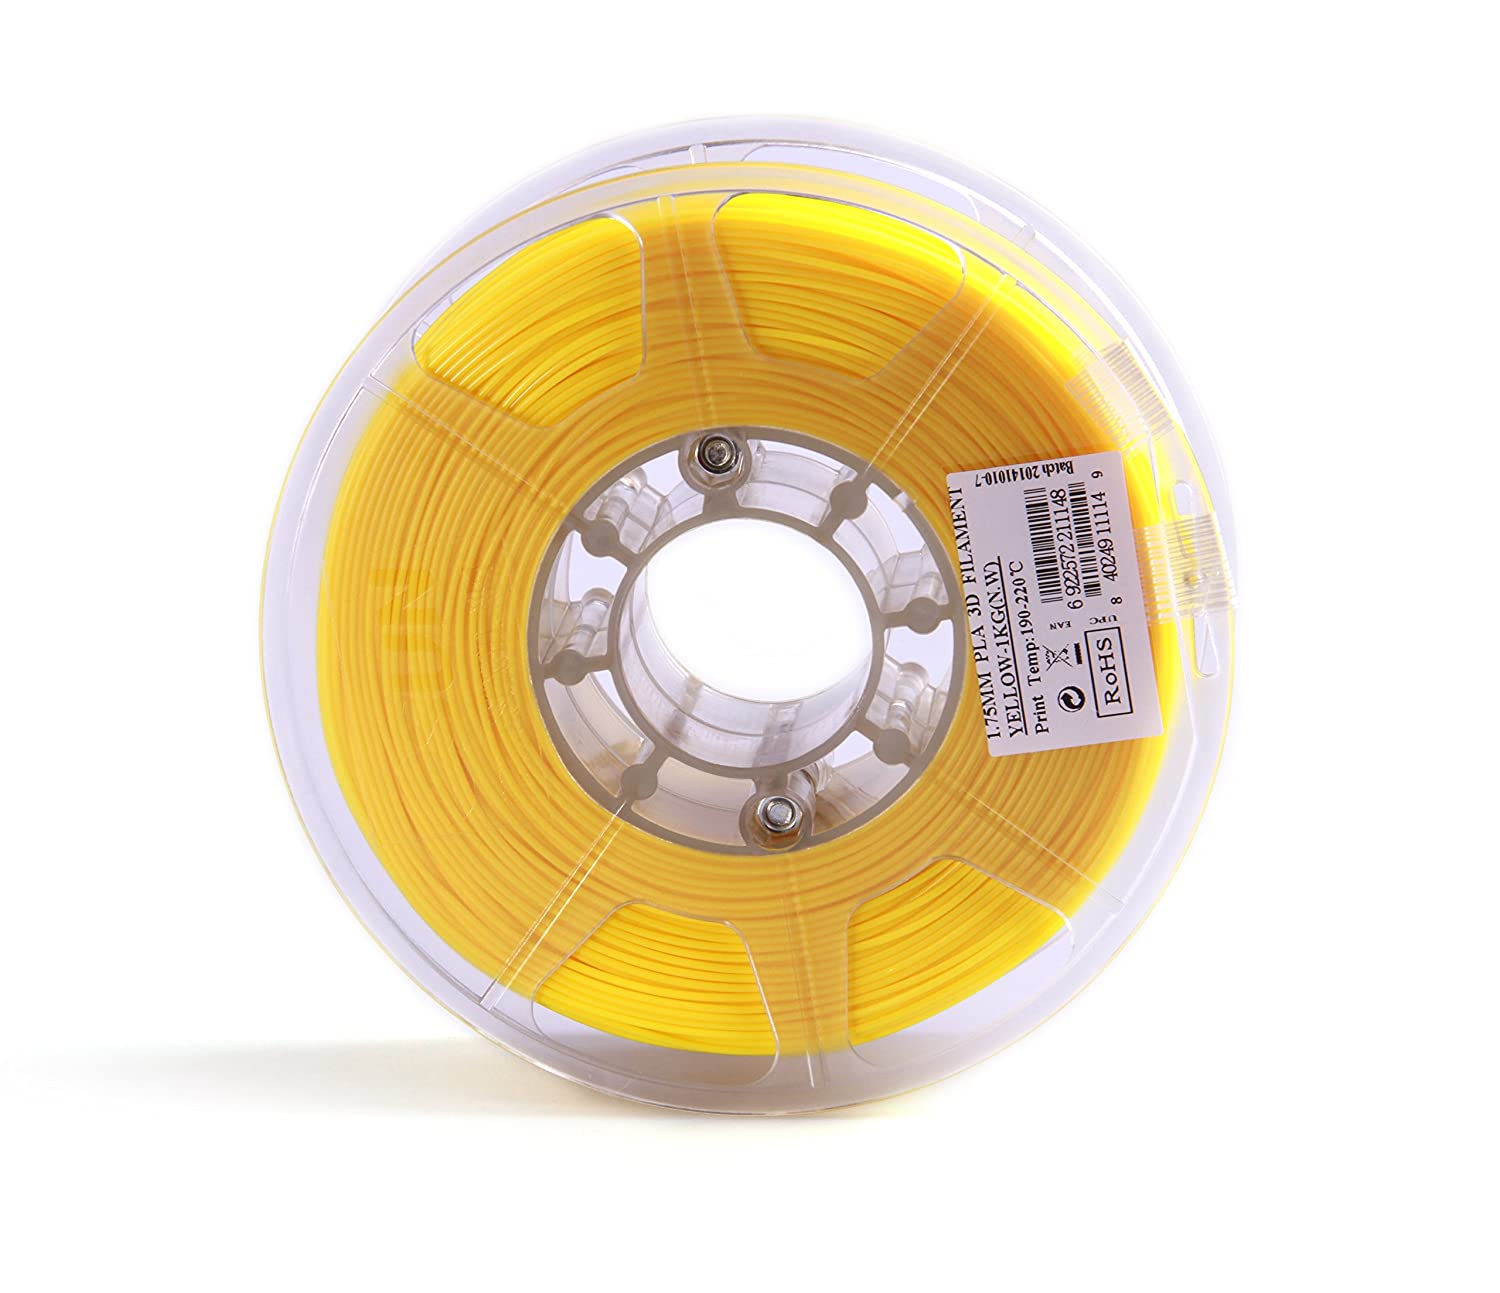 Esun Cartouche de filament PLA - 1,75mm - Jaune - 1 kg: Amazon.es ...